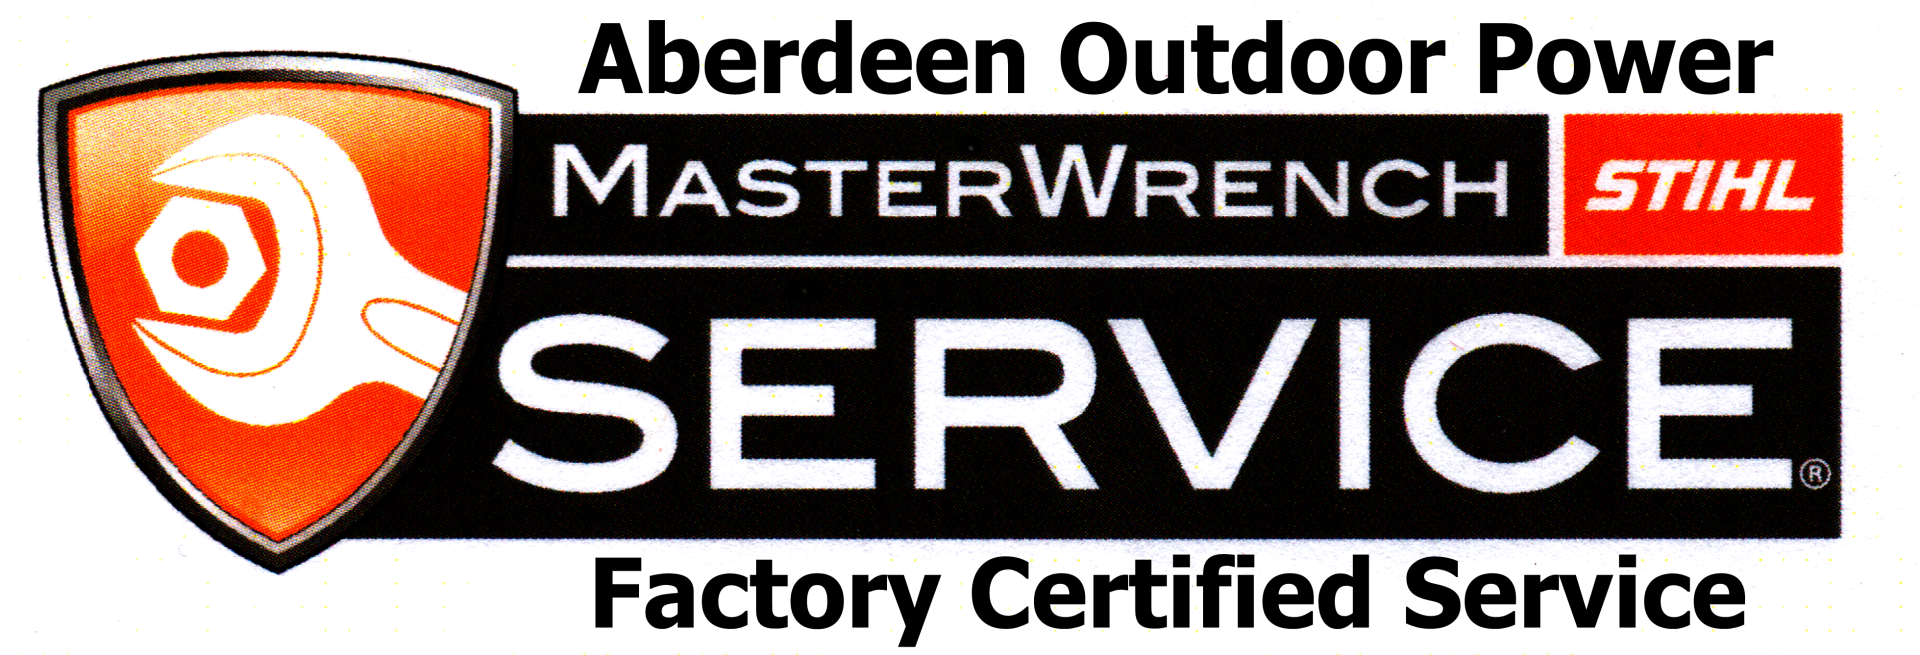 Aberdeen Outdoor Power MasterWrench Stihl factor certified service logo